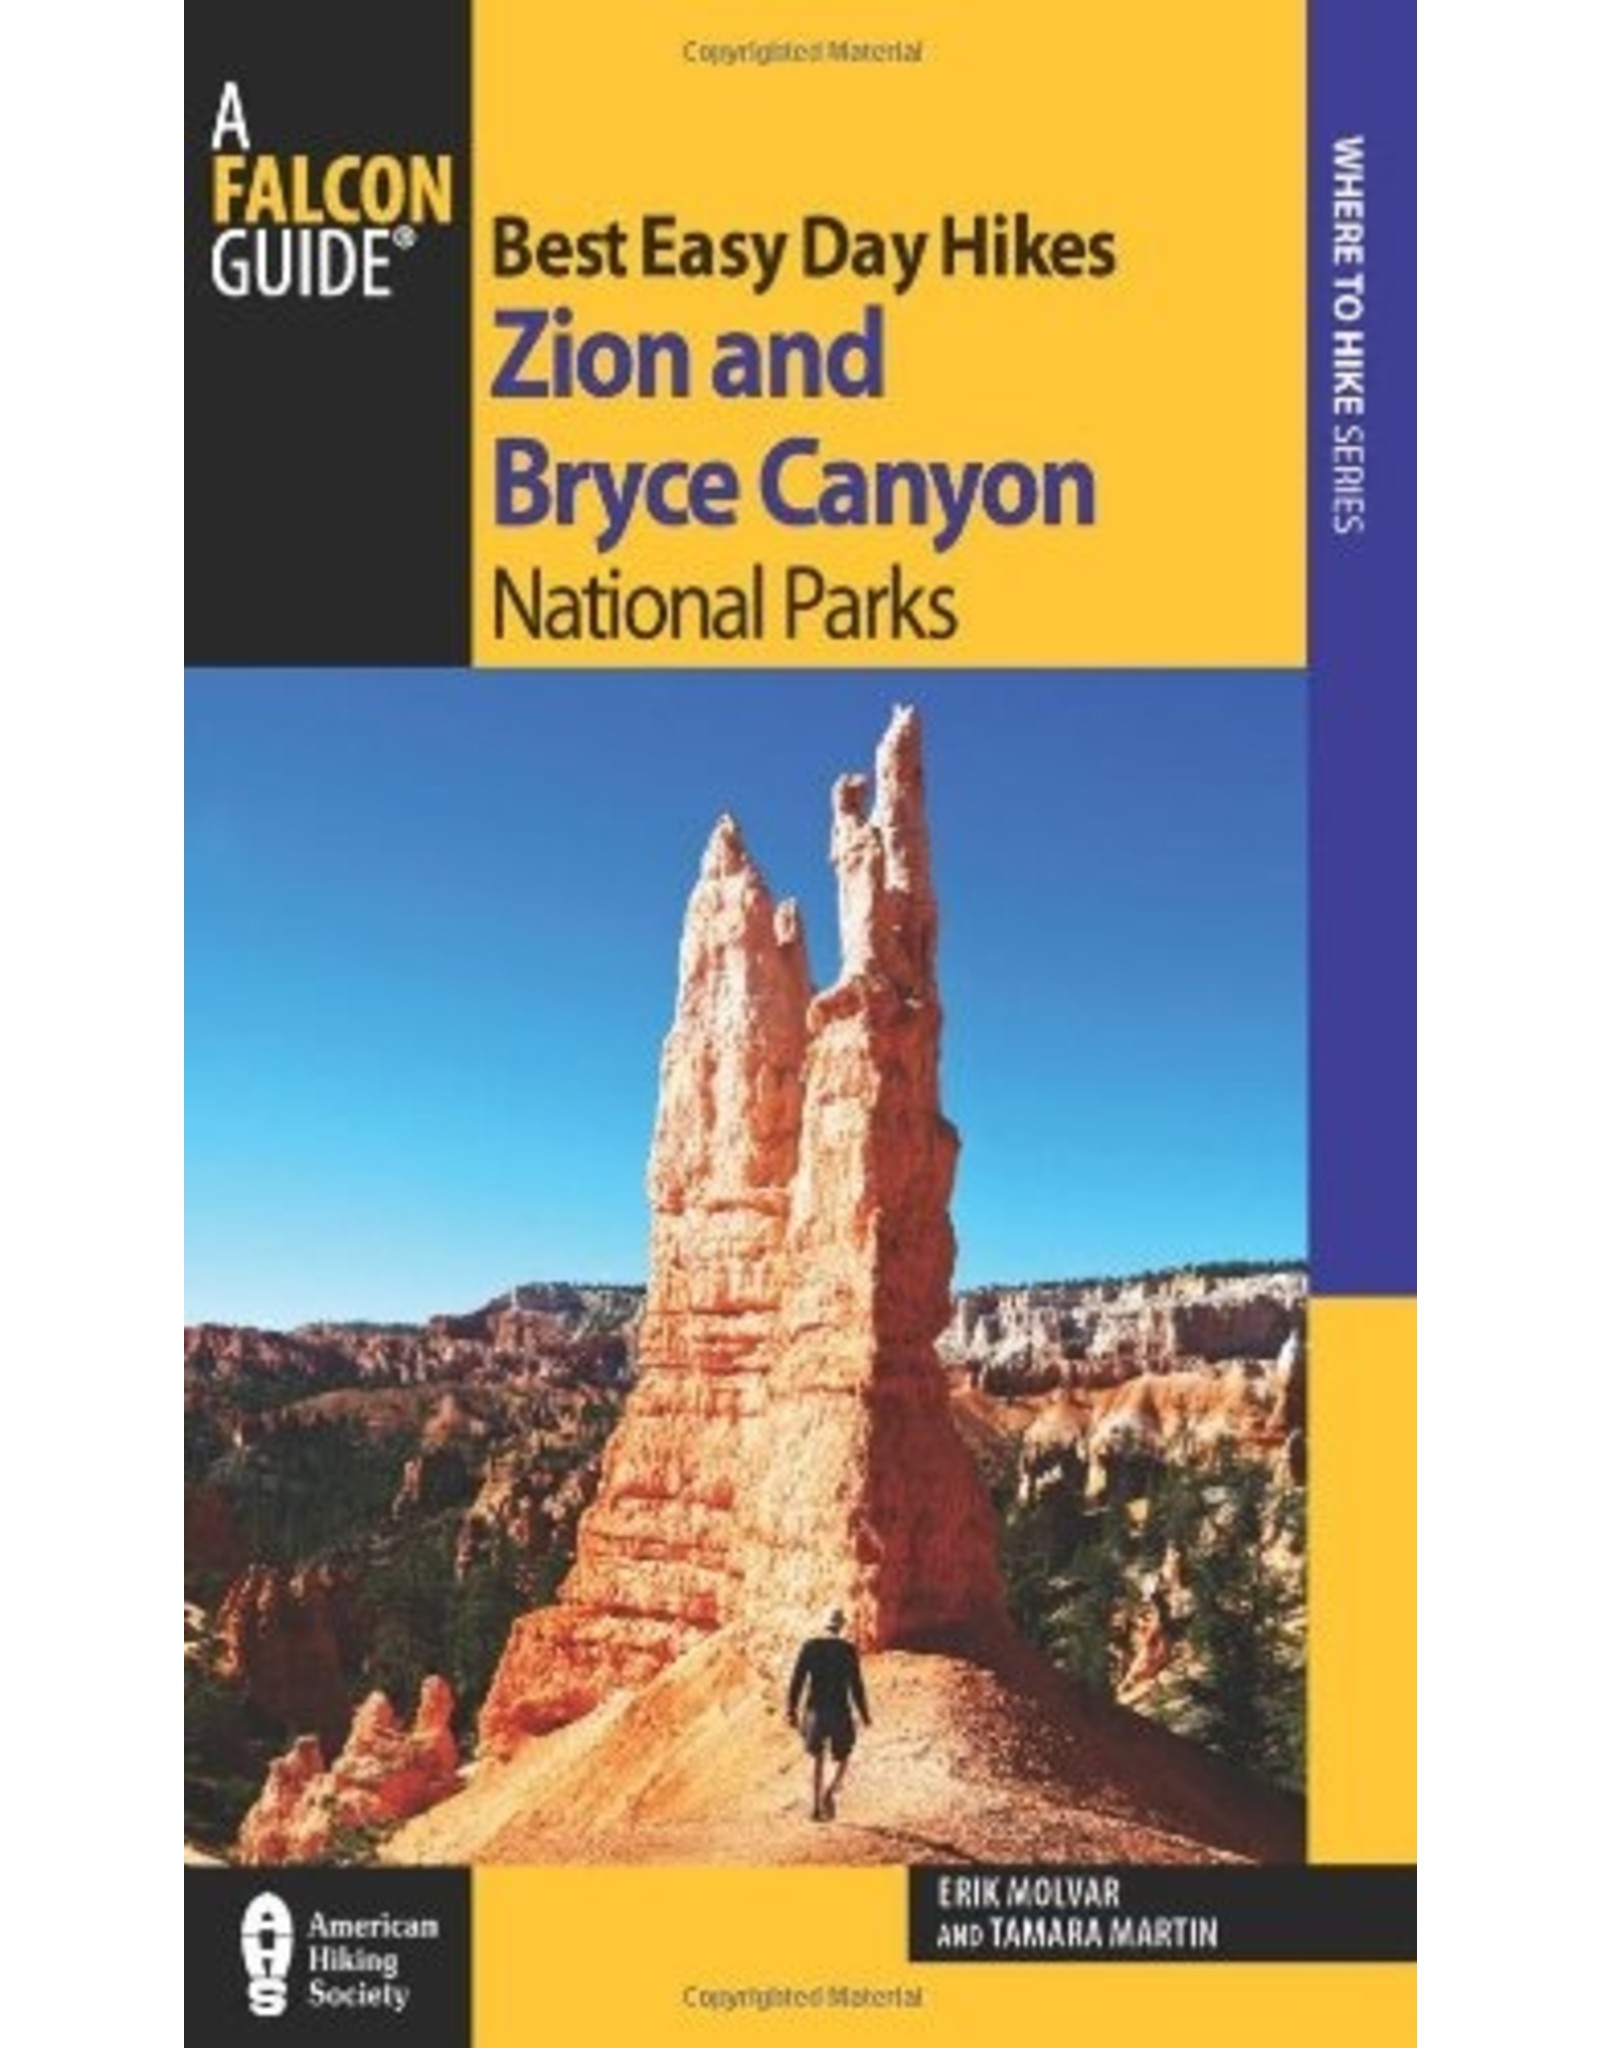 NATIONAL BOOK NETWRK Best Easy Day Hikes Zion and Bryce Canyon National Parks (Best Easy Day Hikes Series) Paperback – Illustrated